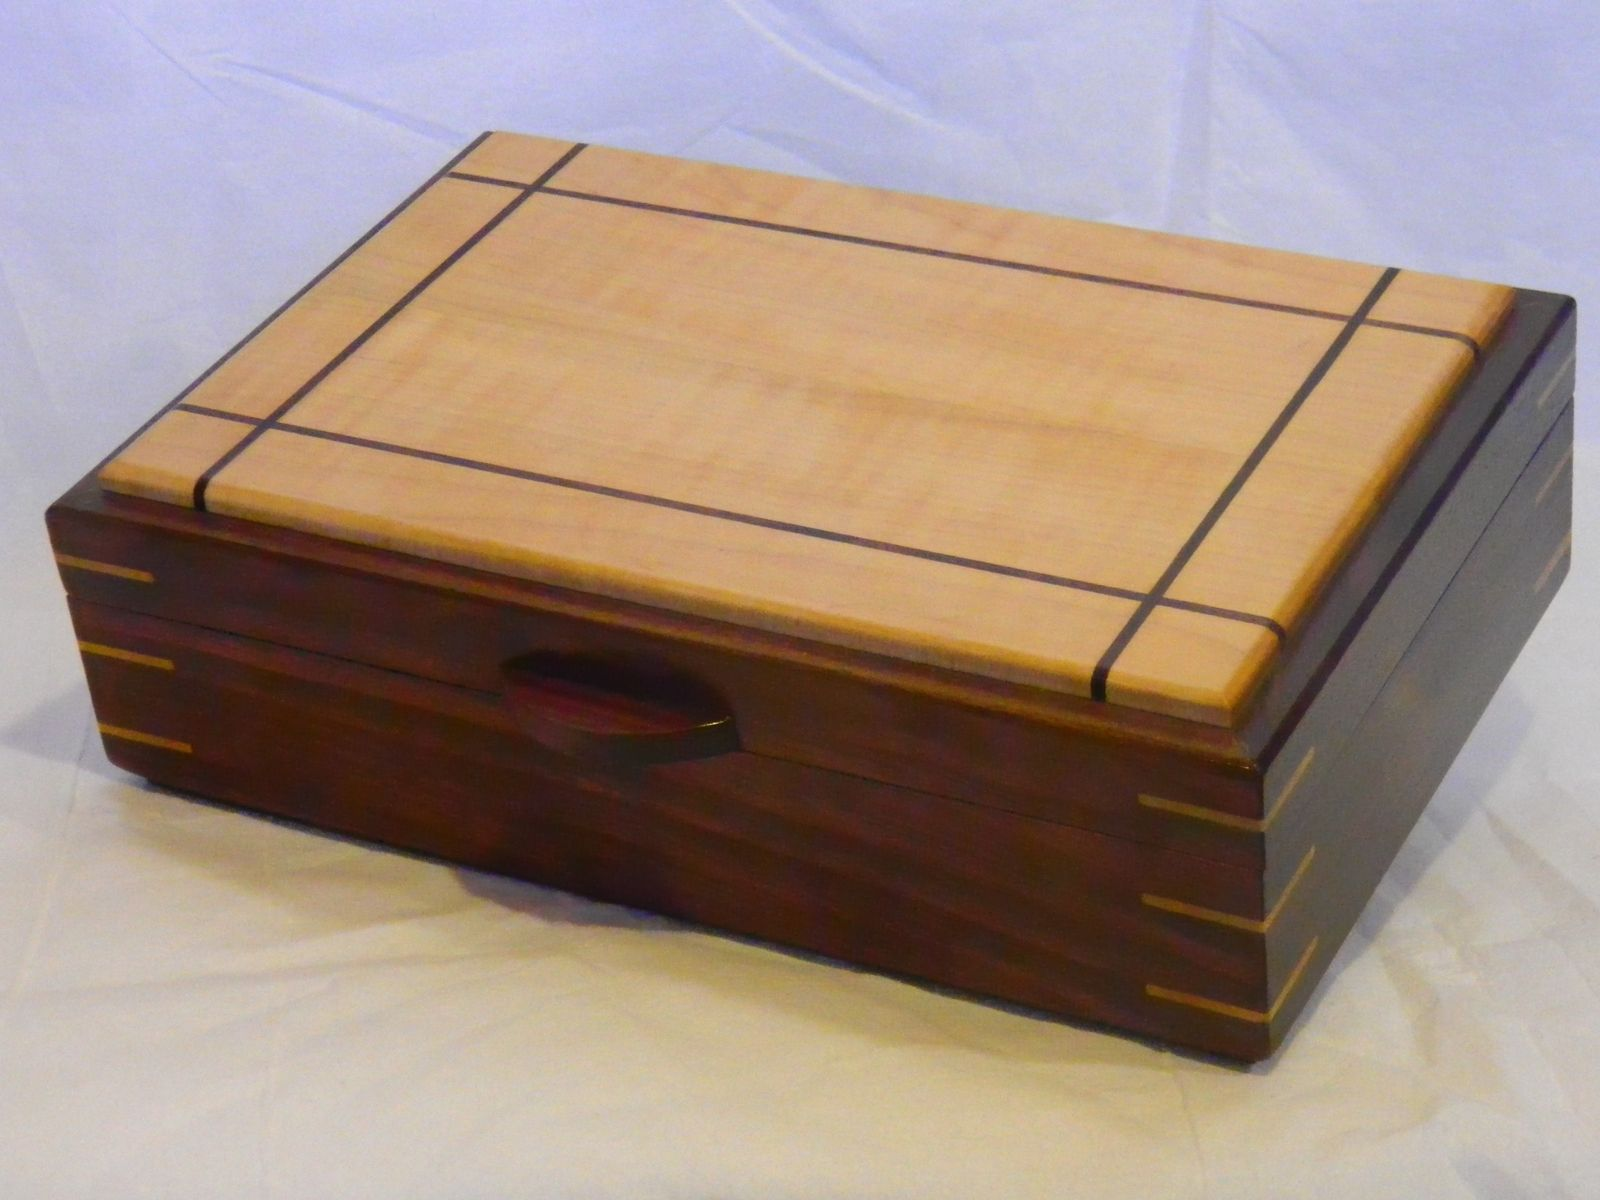 Handmade Jewelry Box - 11-12 by 3gwoodworking | CustomMade.com